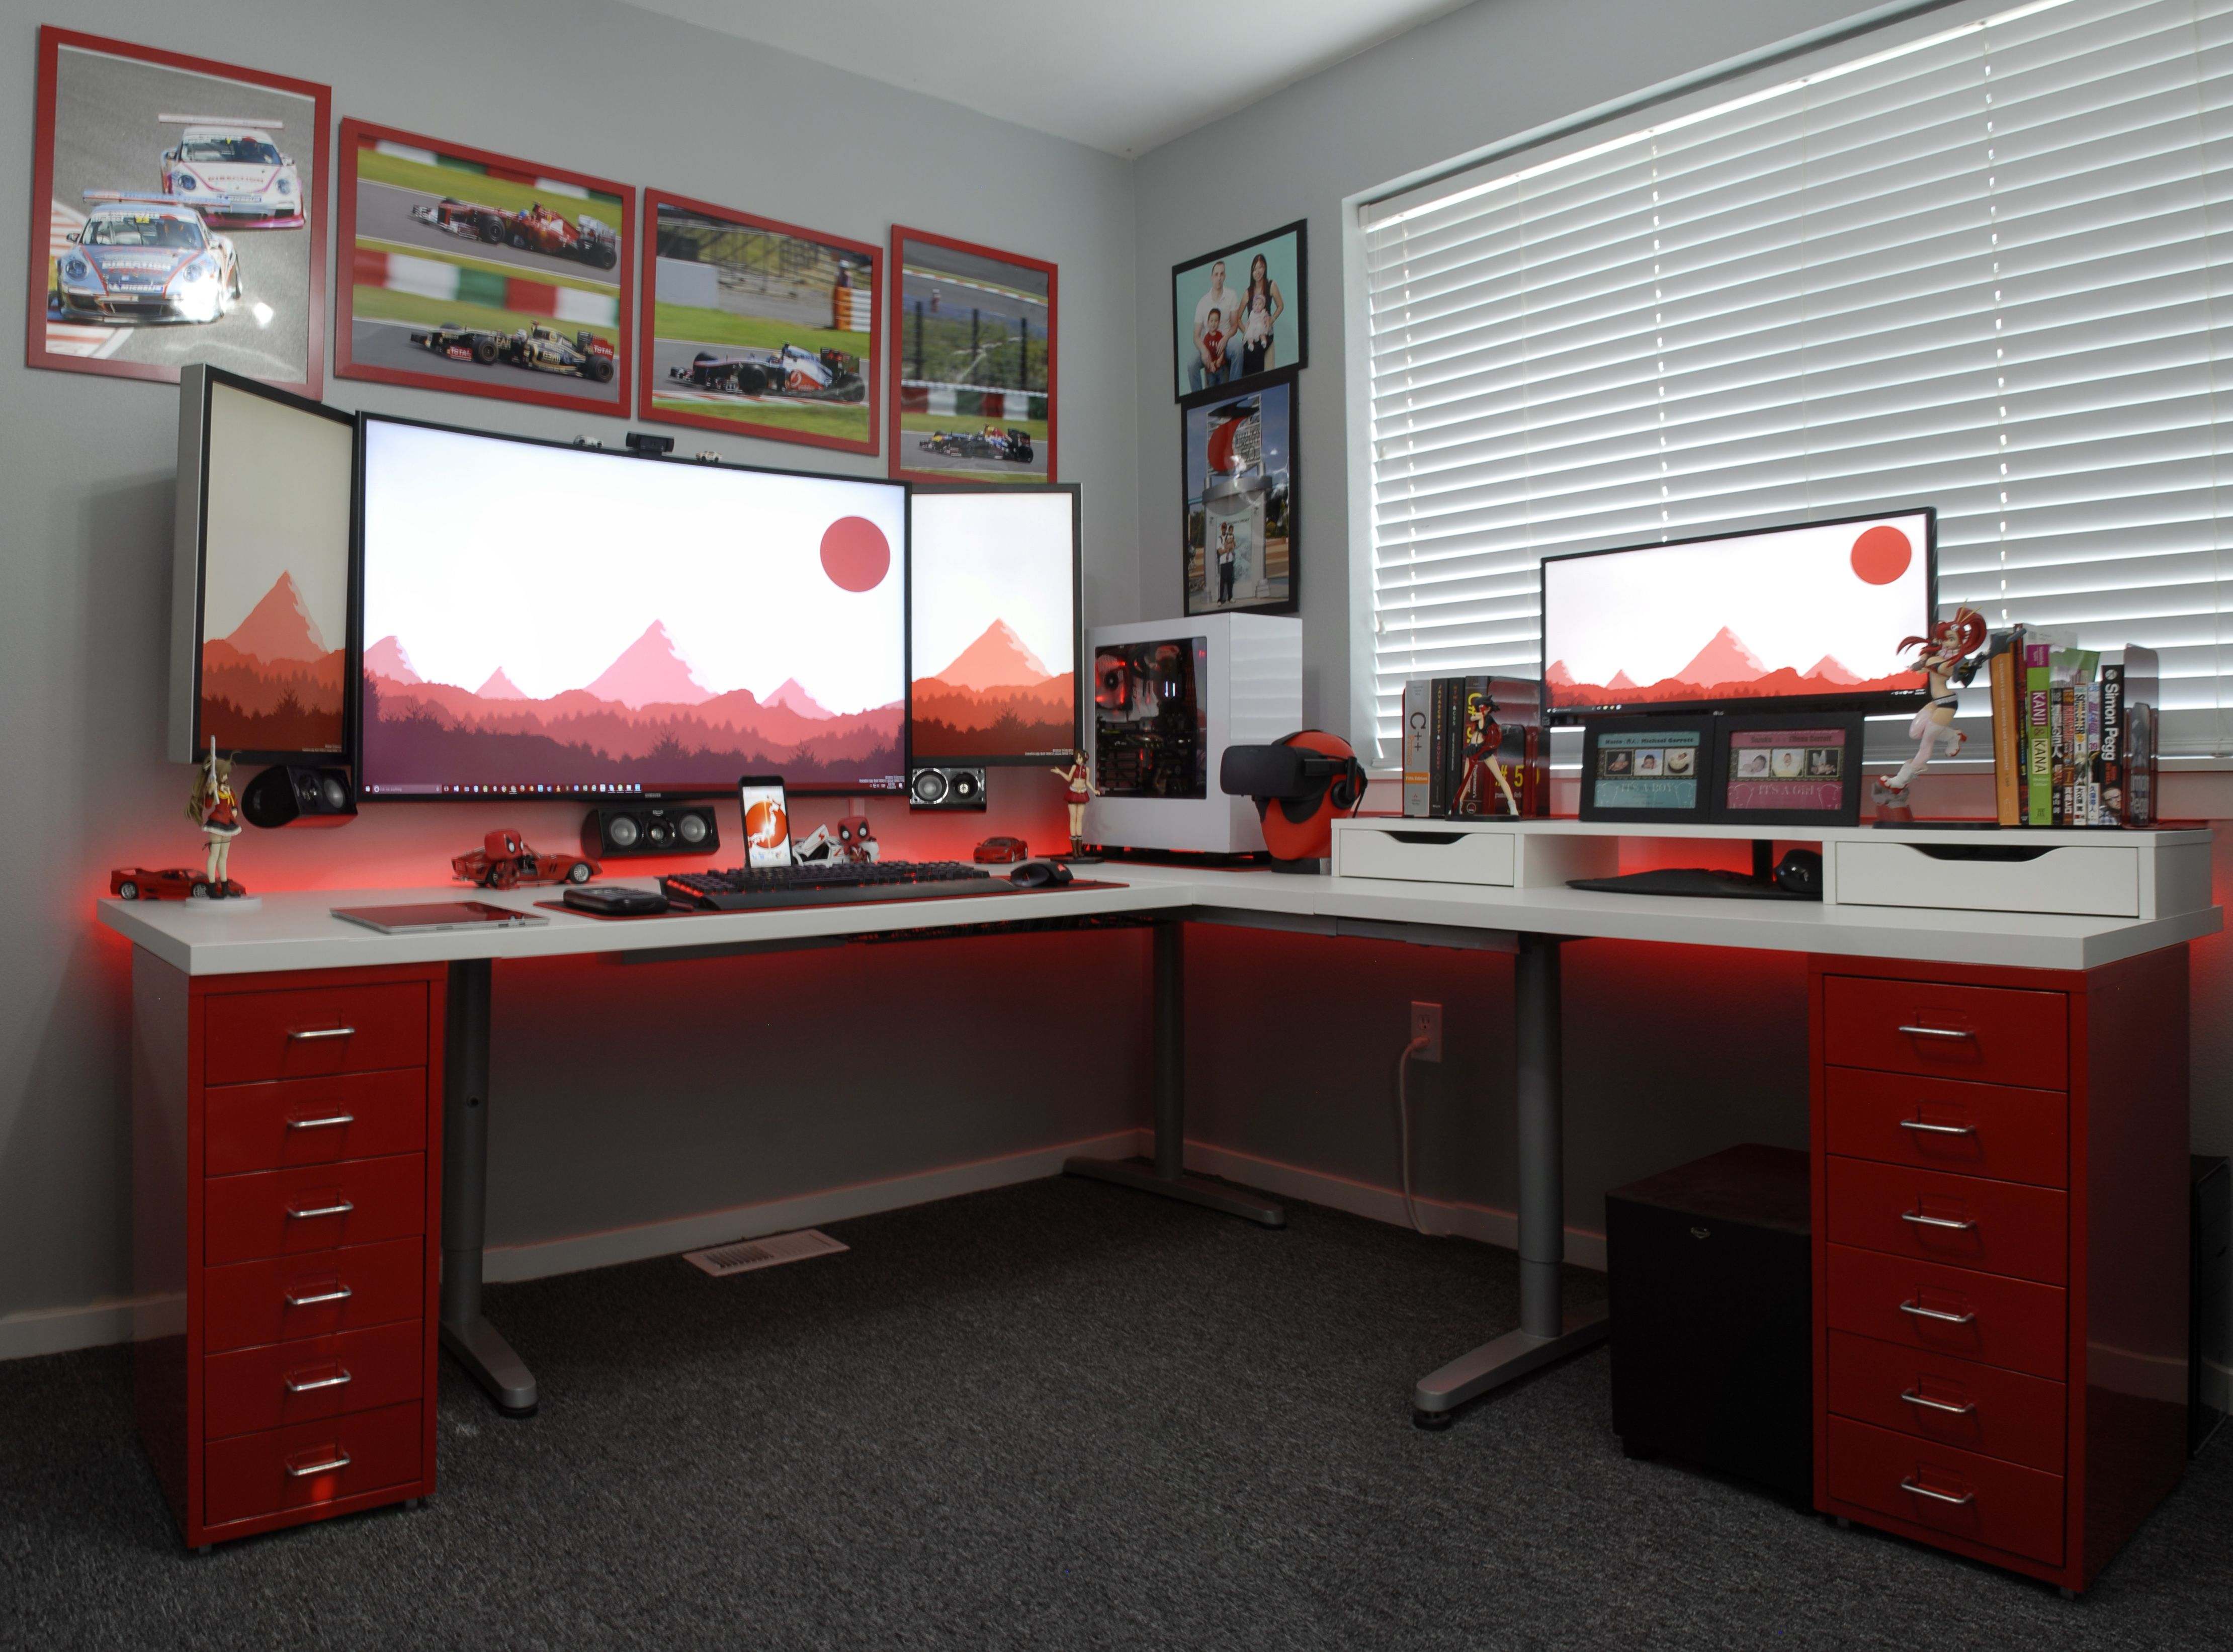 Home Office Battlestation | Computertisch, Informatik und Möbel